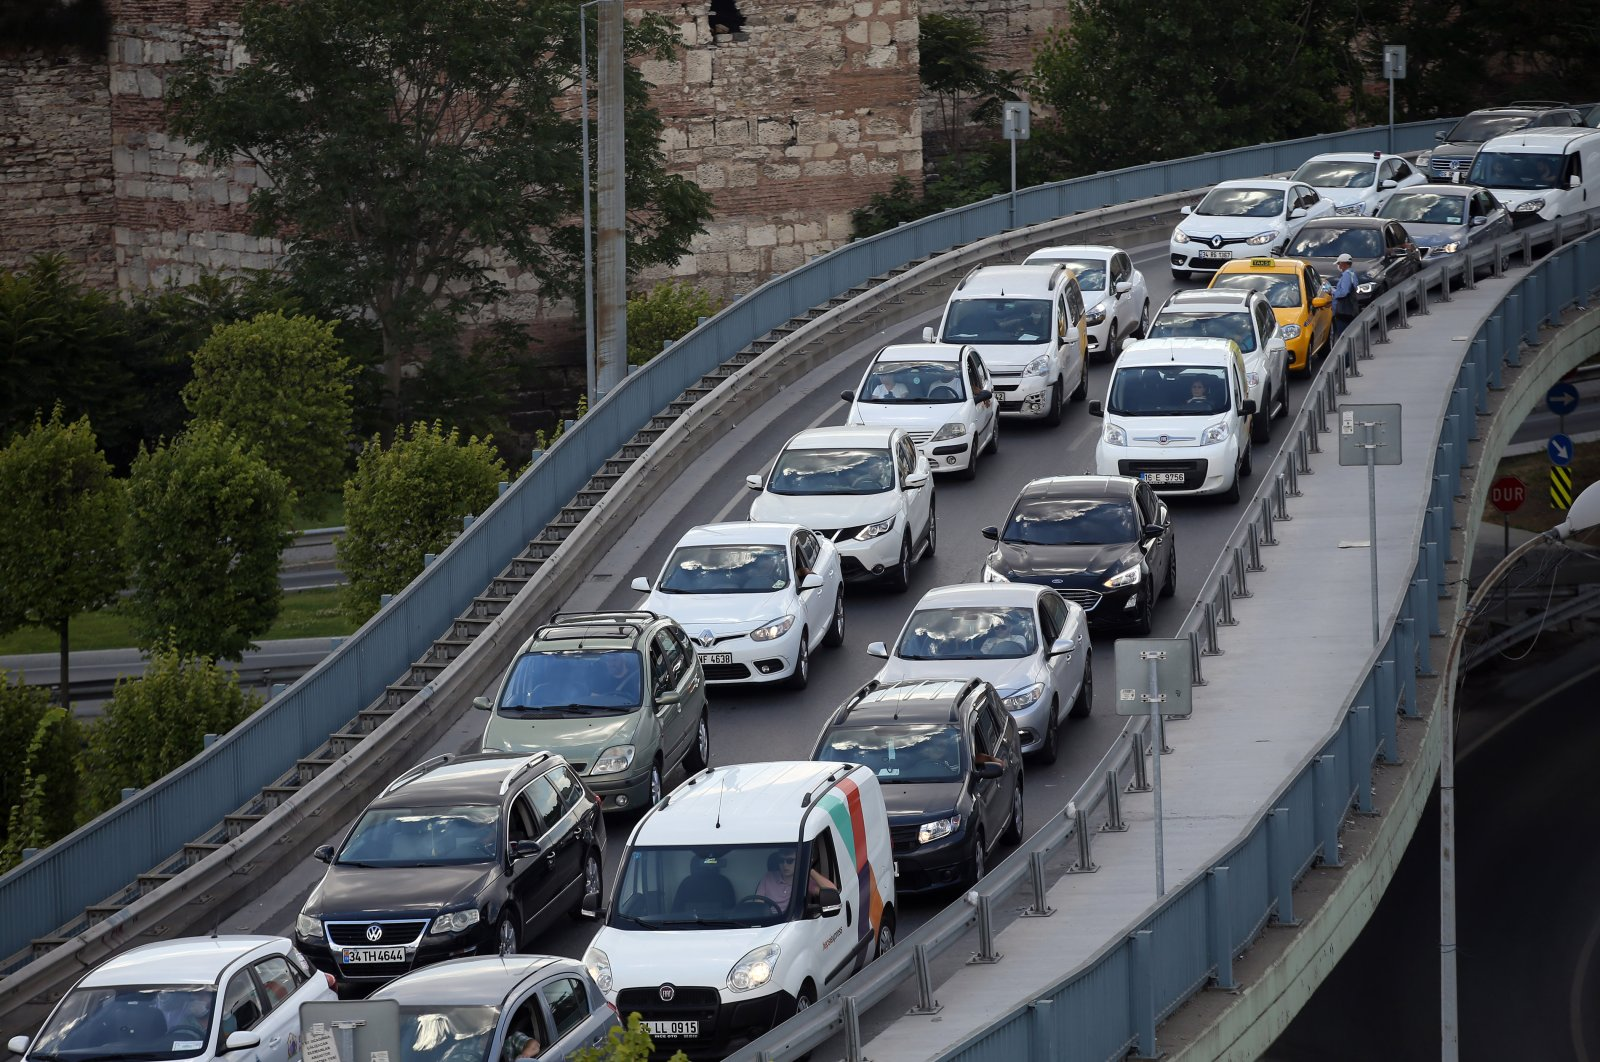 Cars drive on the D-100 state highway in the Edirnekapı neighborhood of Istanbul, July 21, 2020. (AA Photo)